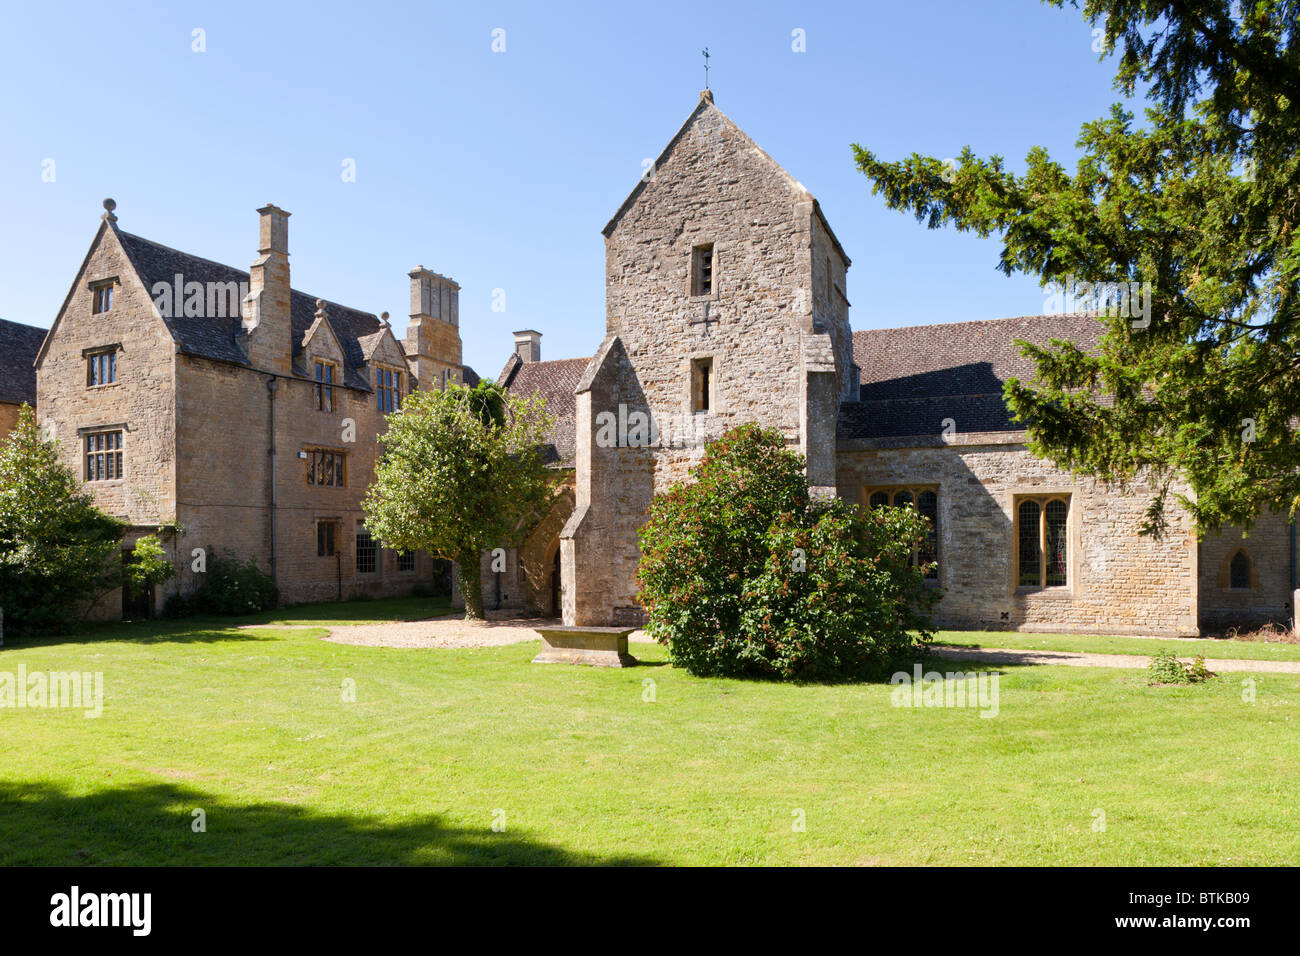 St Denys church, next to the manor house, in the village of Little Compton, Warwickshire - Stock Image